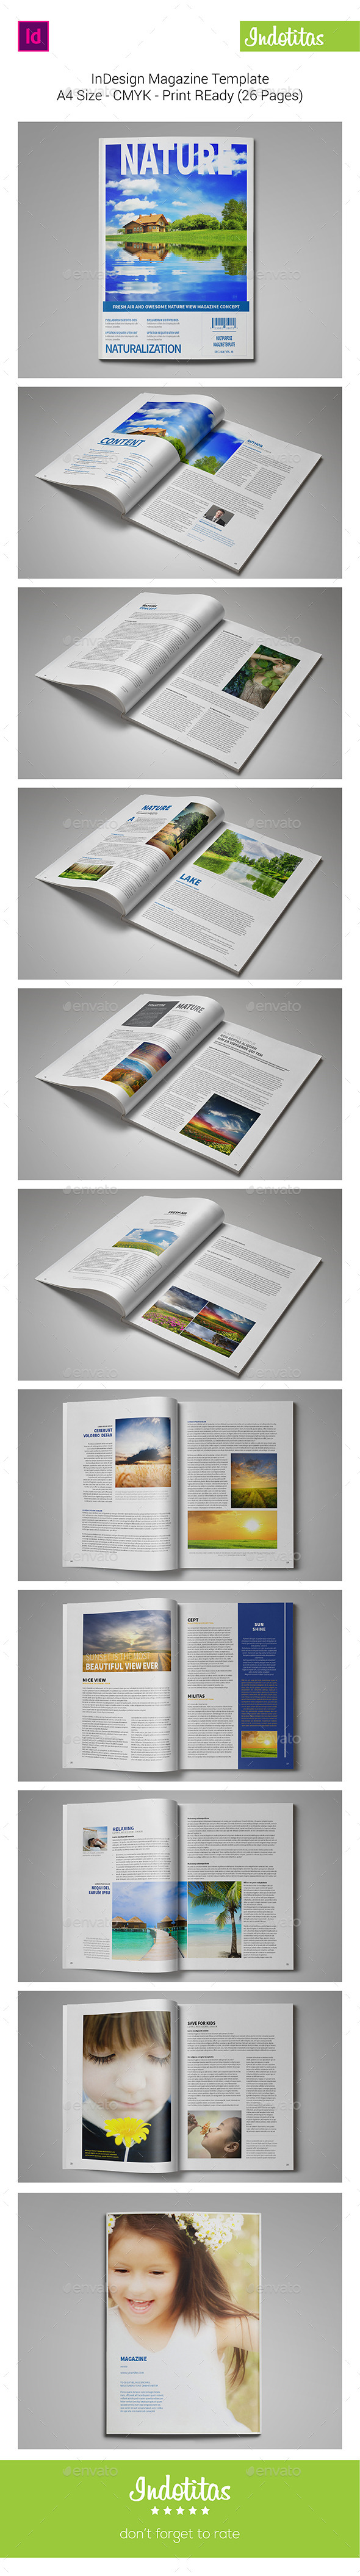 Nature Magazine Template - Magazines Print Templates